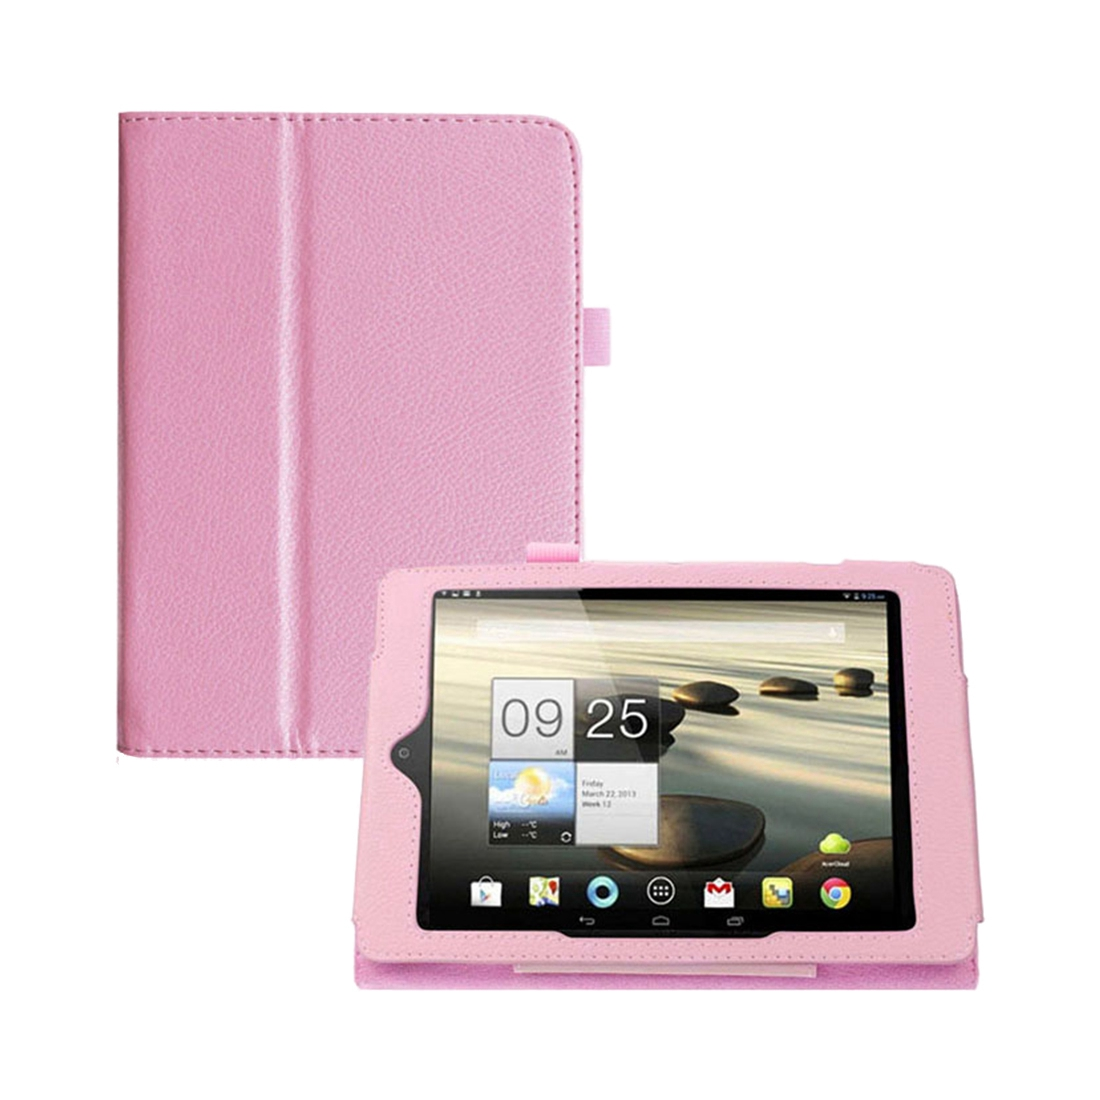 Folding-Folio-Leather-Case-Cover-Stand-for-Acer-Iconia-A1-A1-810-Tablet-F8K-X7A2